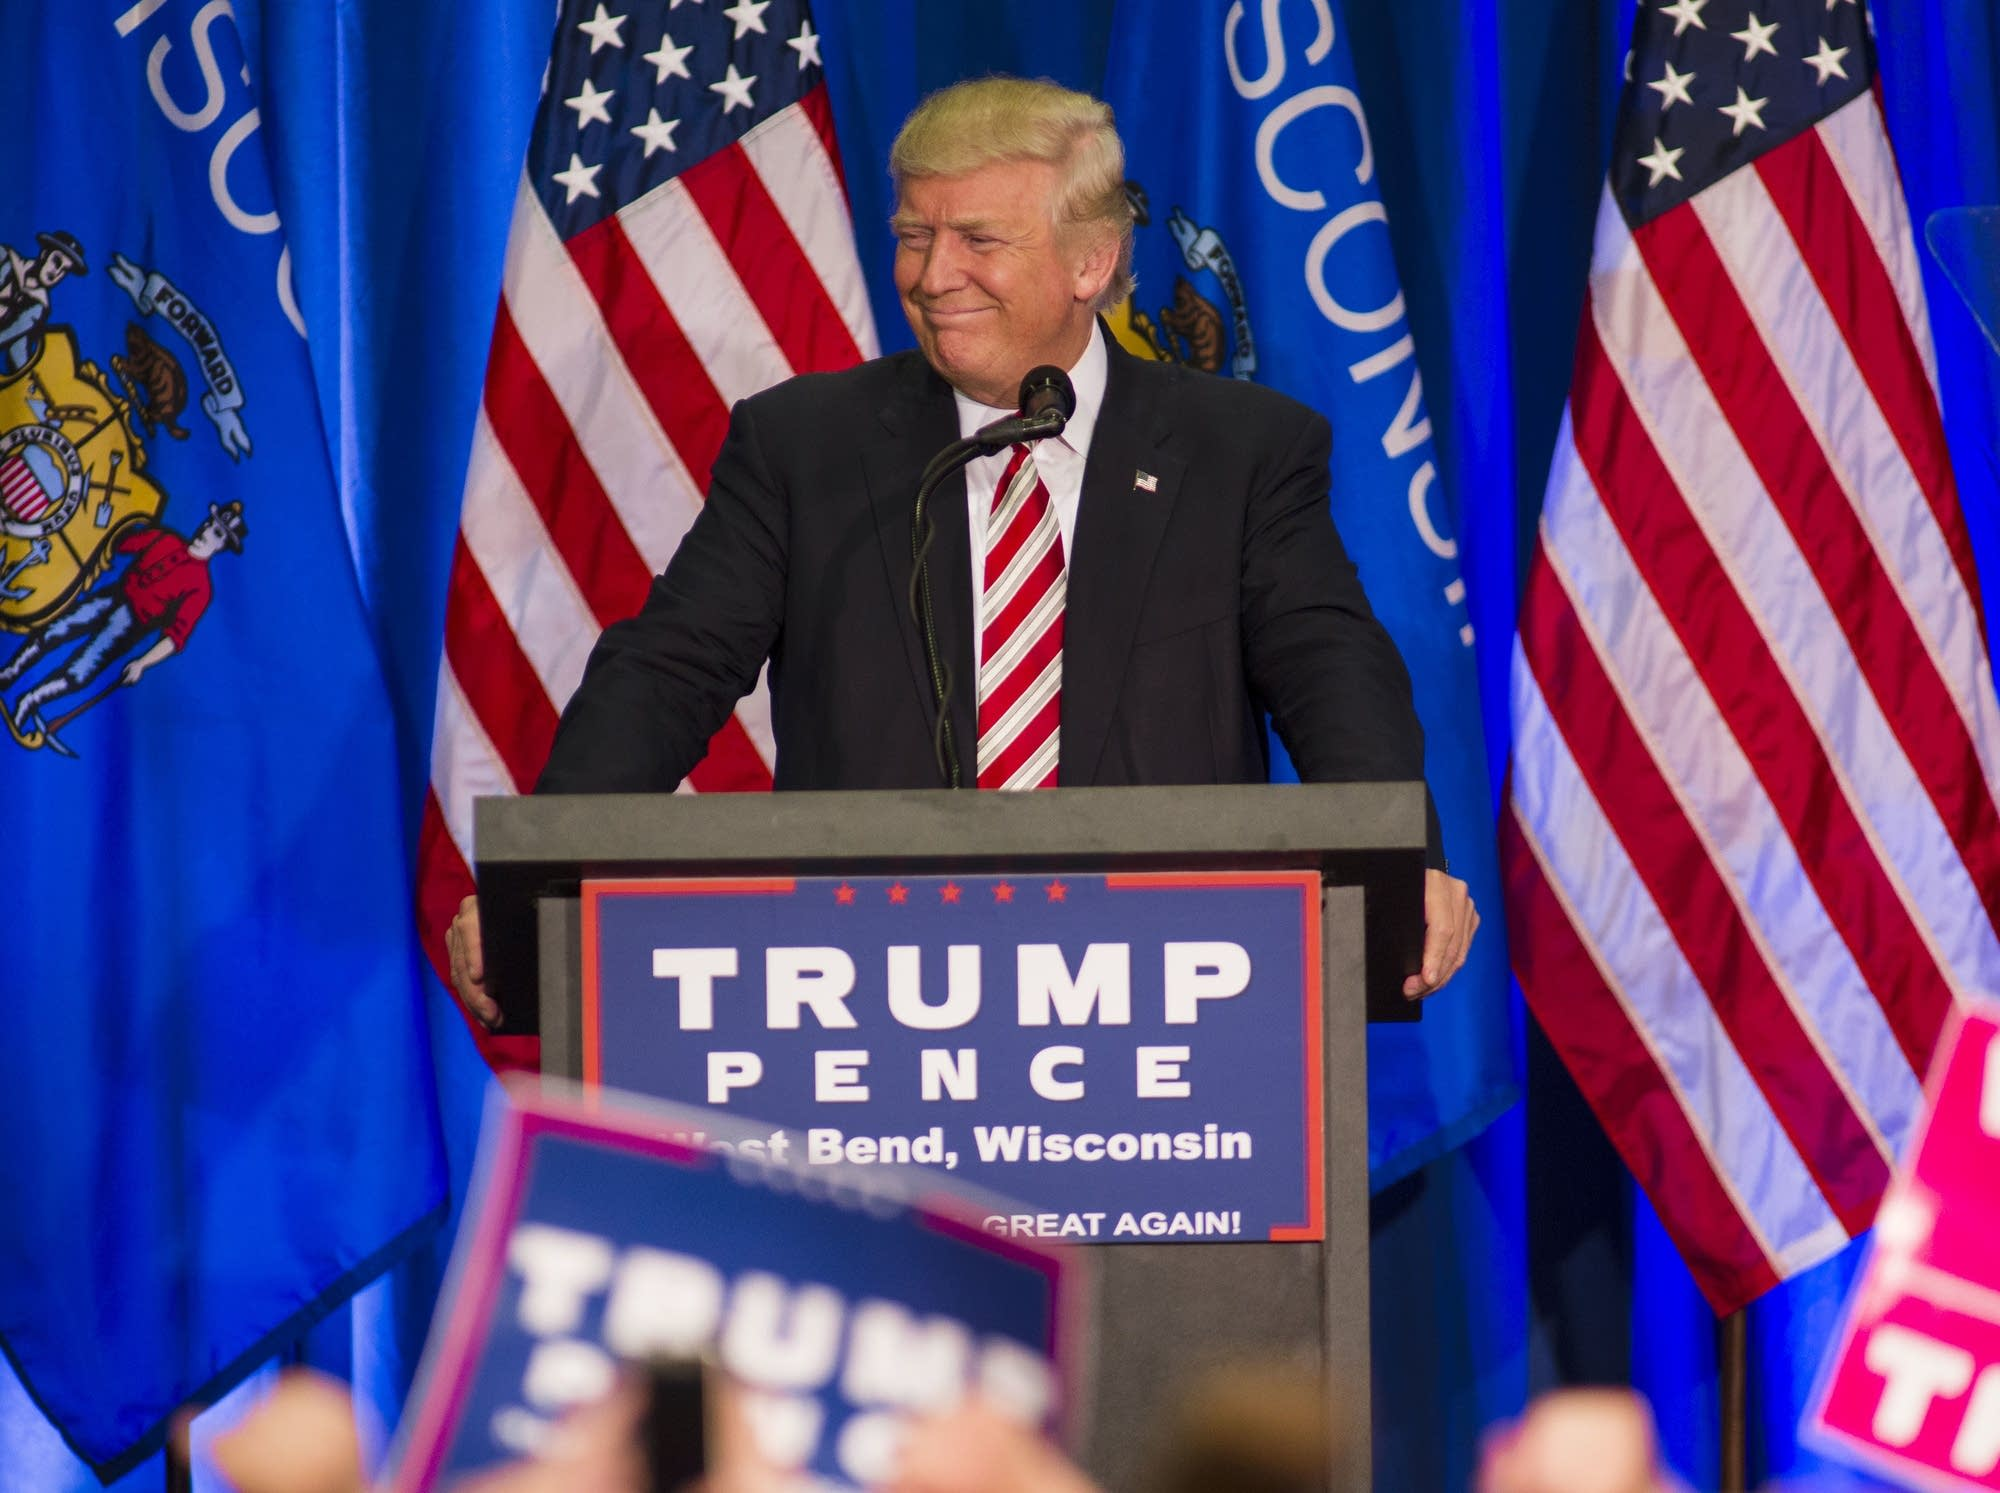 Donald Trump holds a rally in West Bend, Wisconsin.